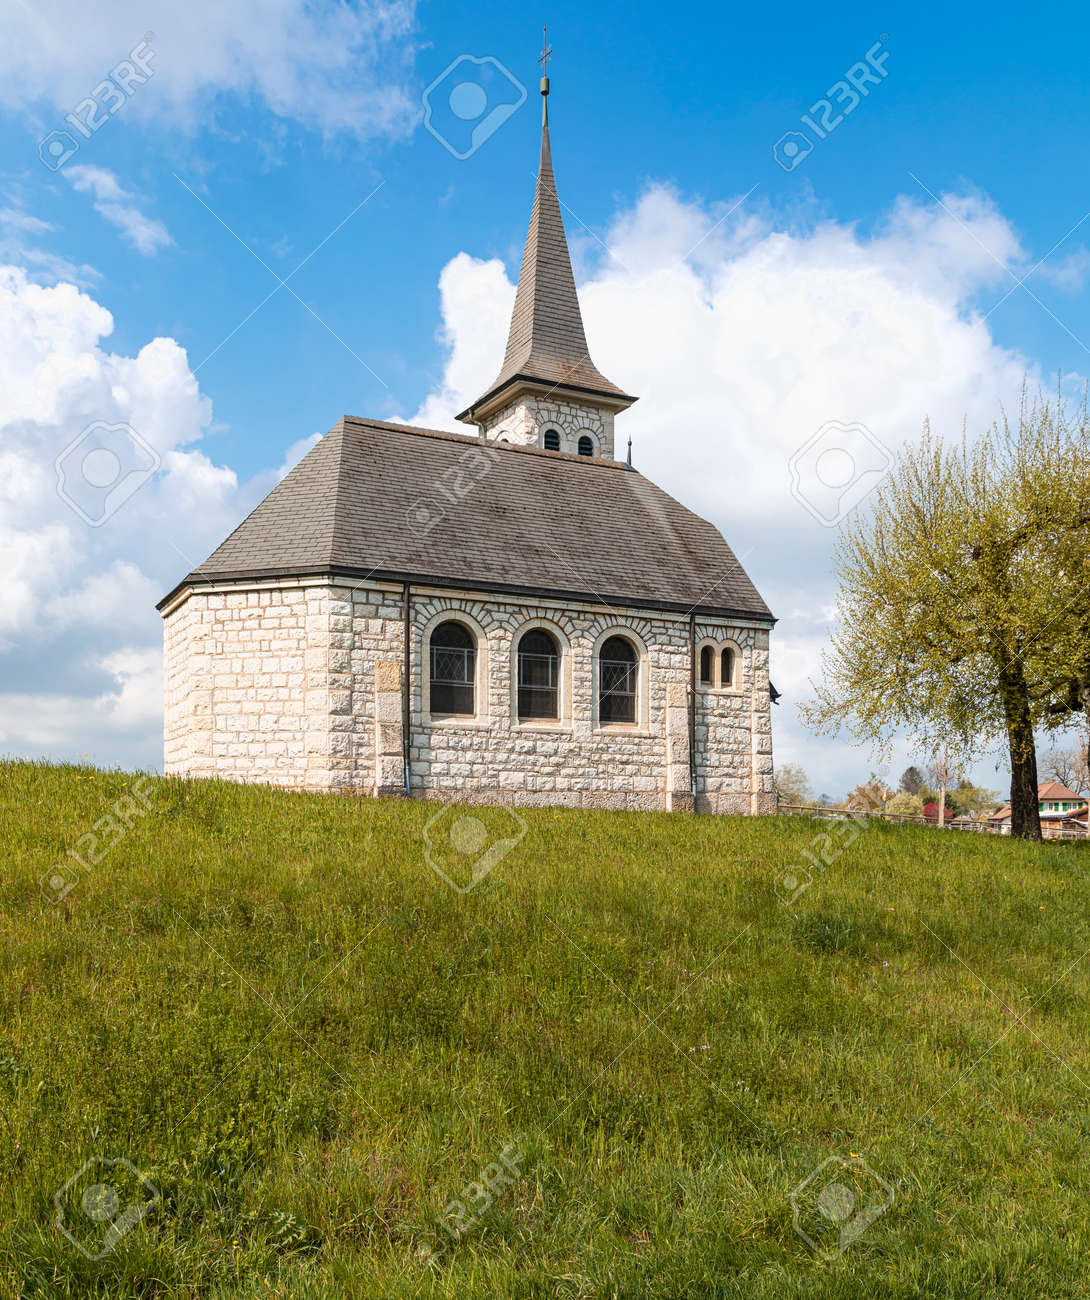 Characteristic church in the green field in the Swiss Alps of the Canton Jura. Nobody inside. Cloudy day. - 170380017